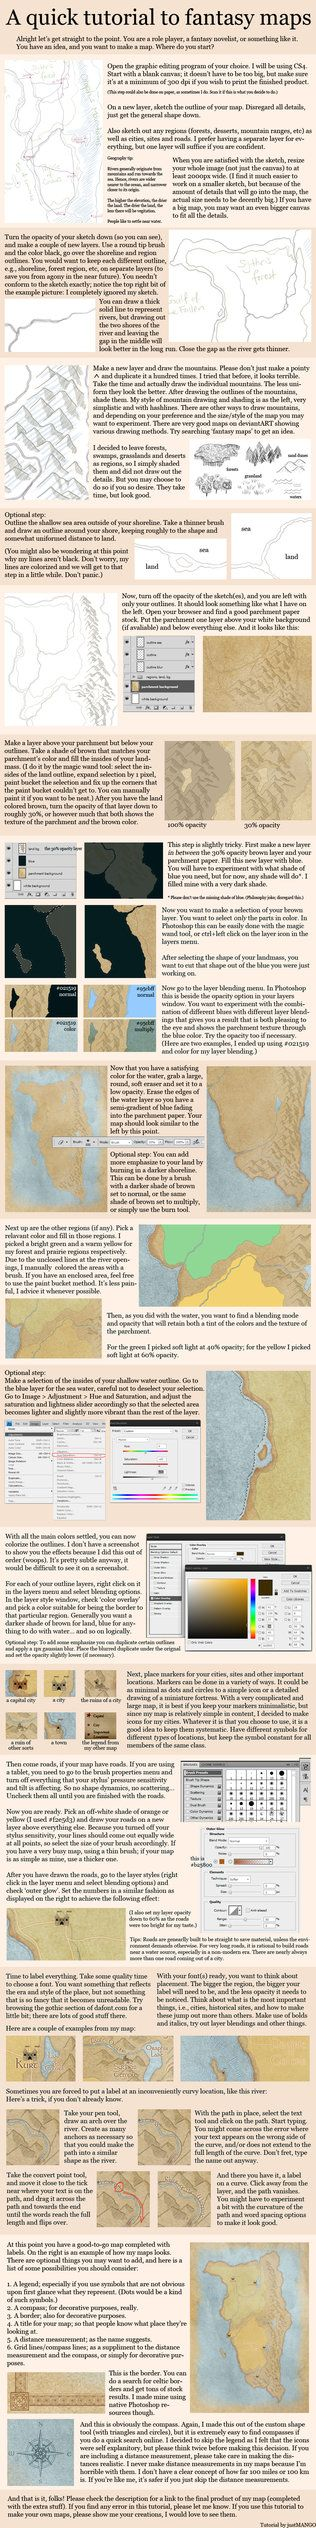 DIY fantasy maps--thsi is goign to be useful one day, i can sense it.